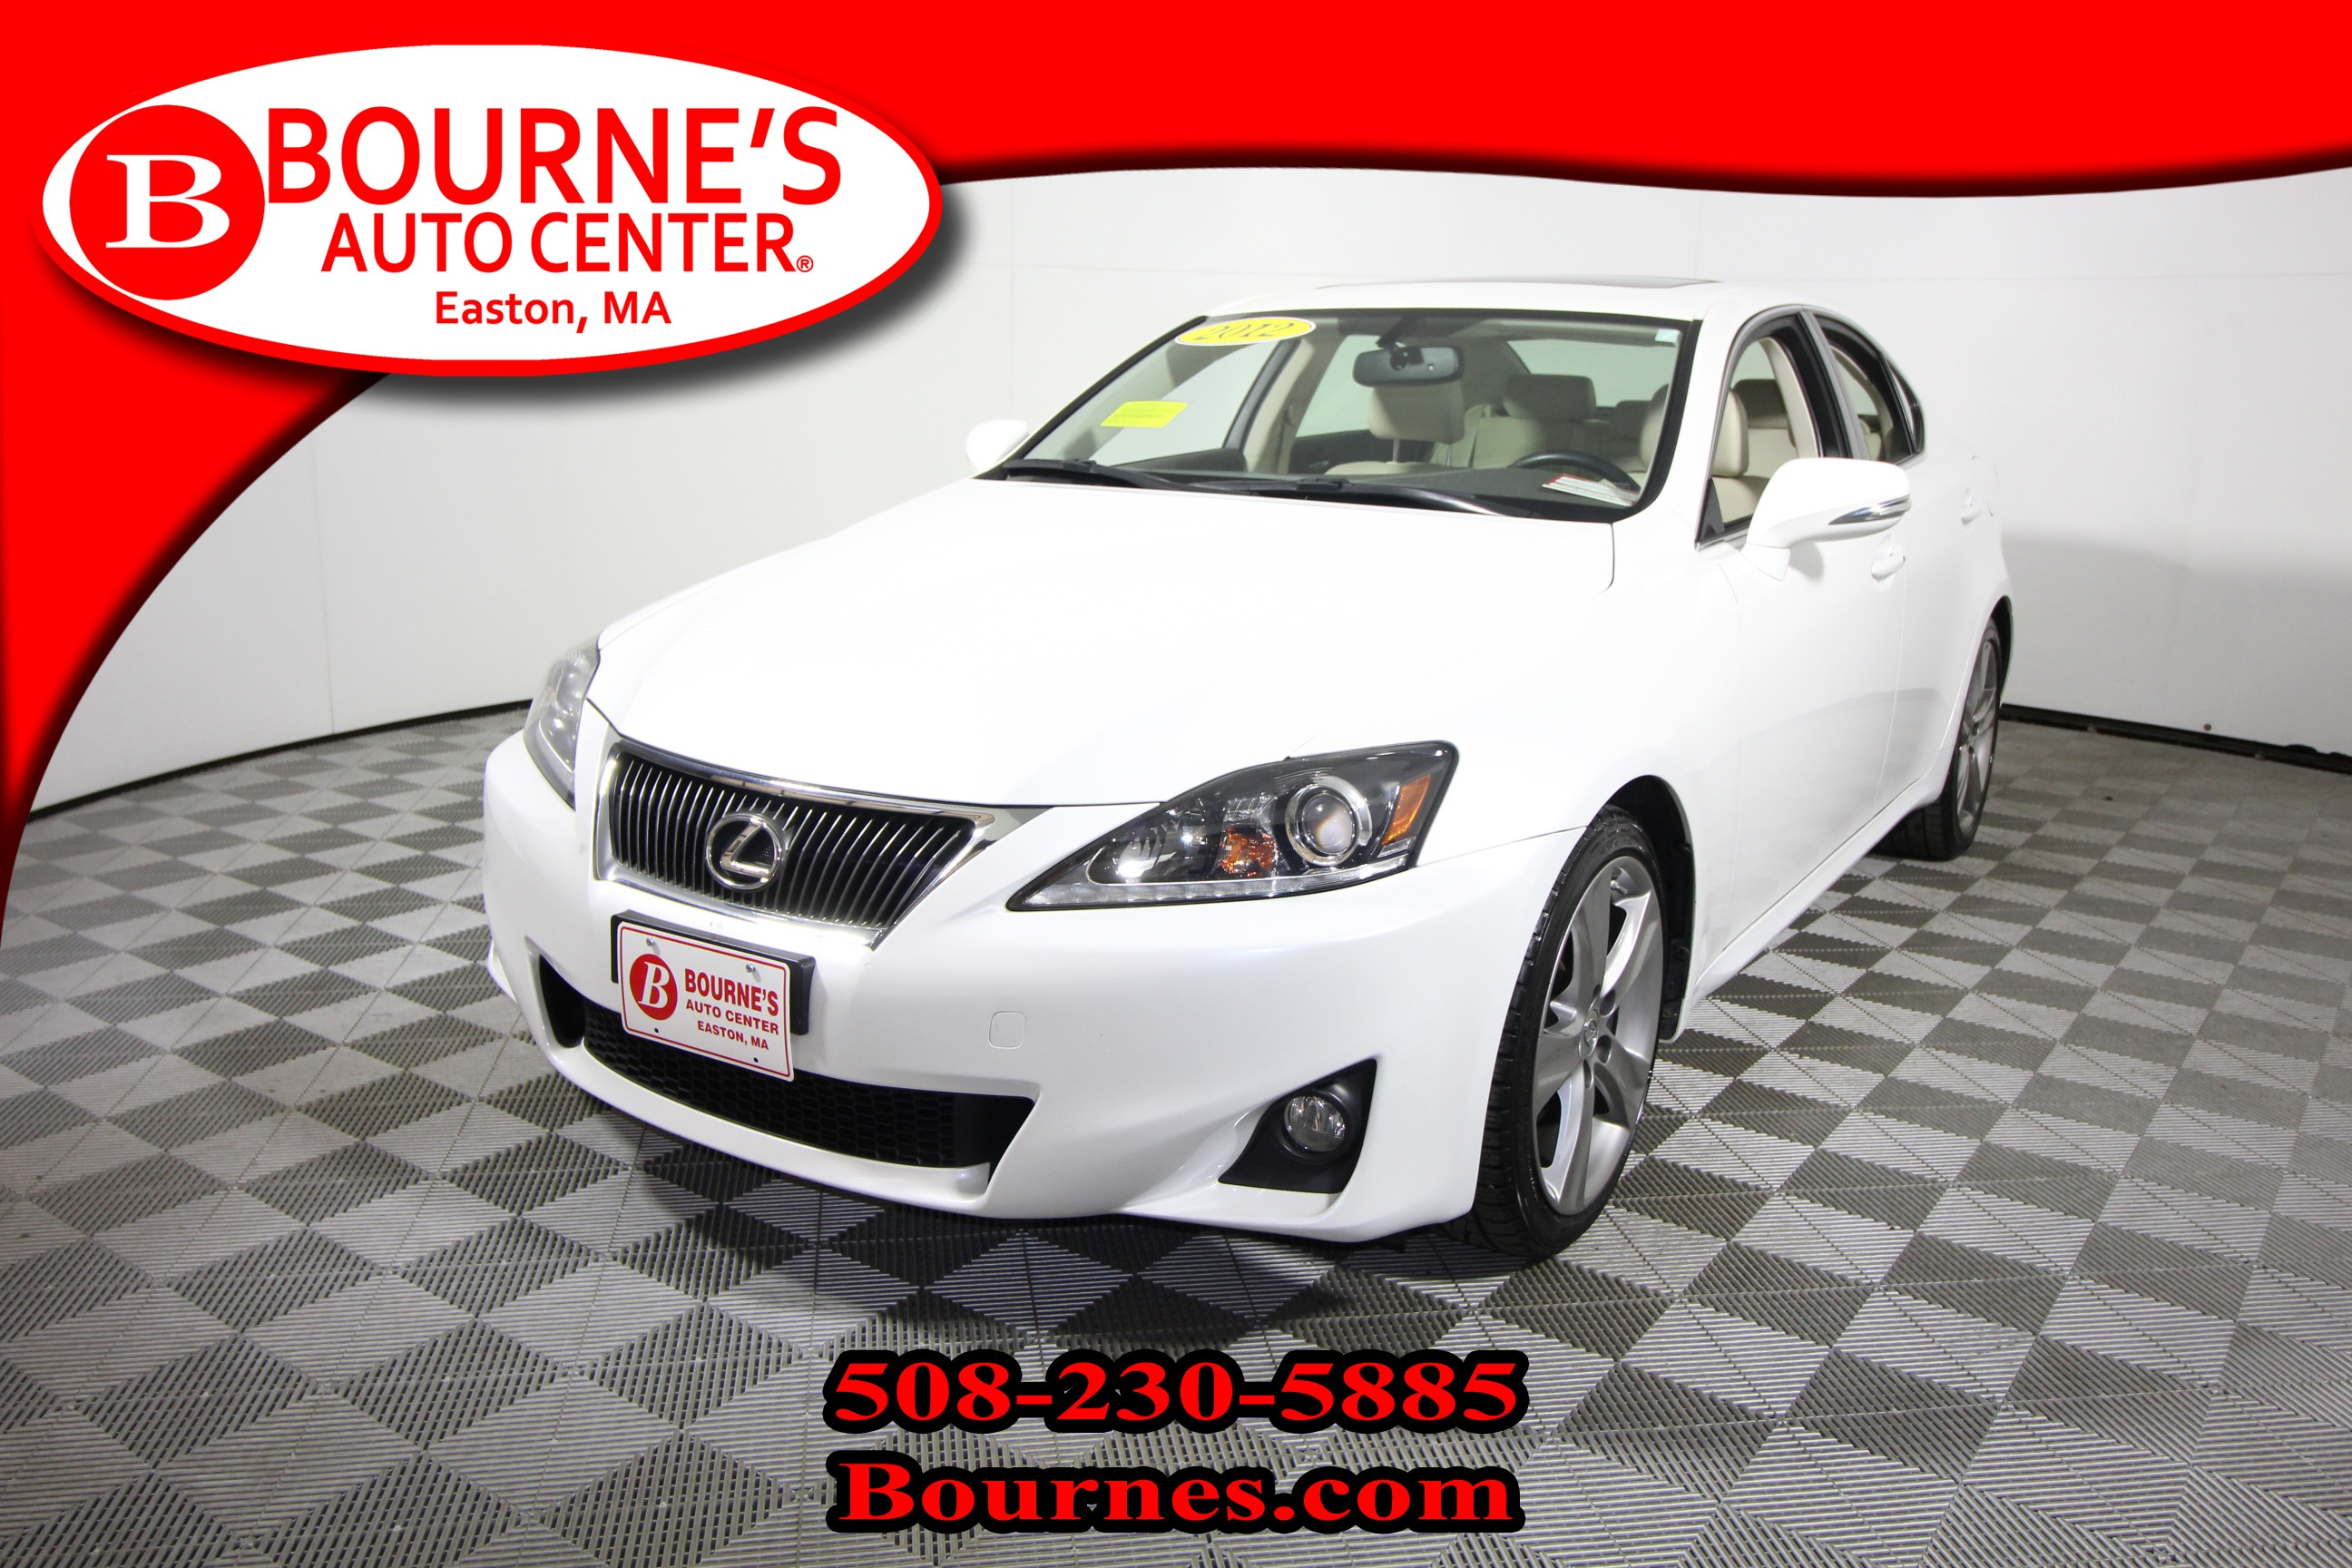 Used Lexus IS 250 For Sale Providence RI CarGurus